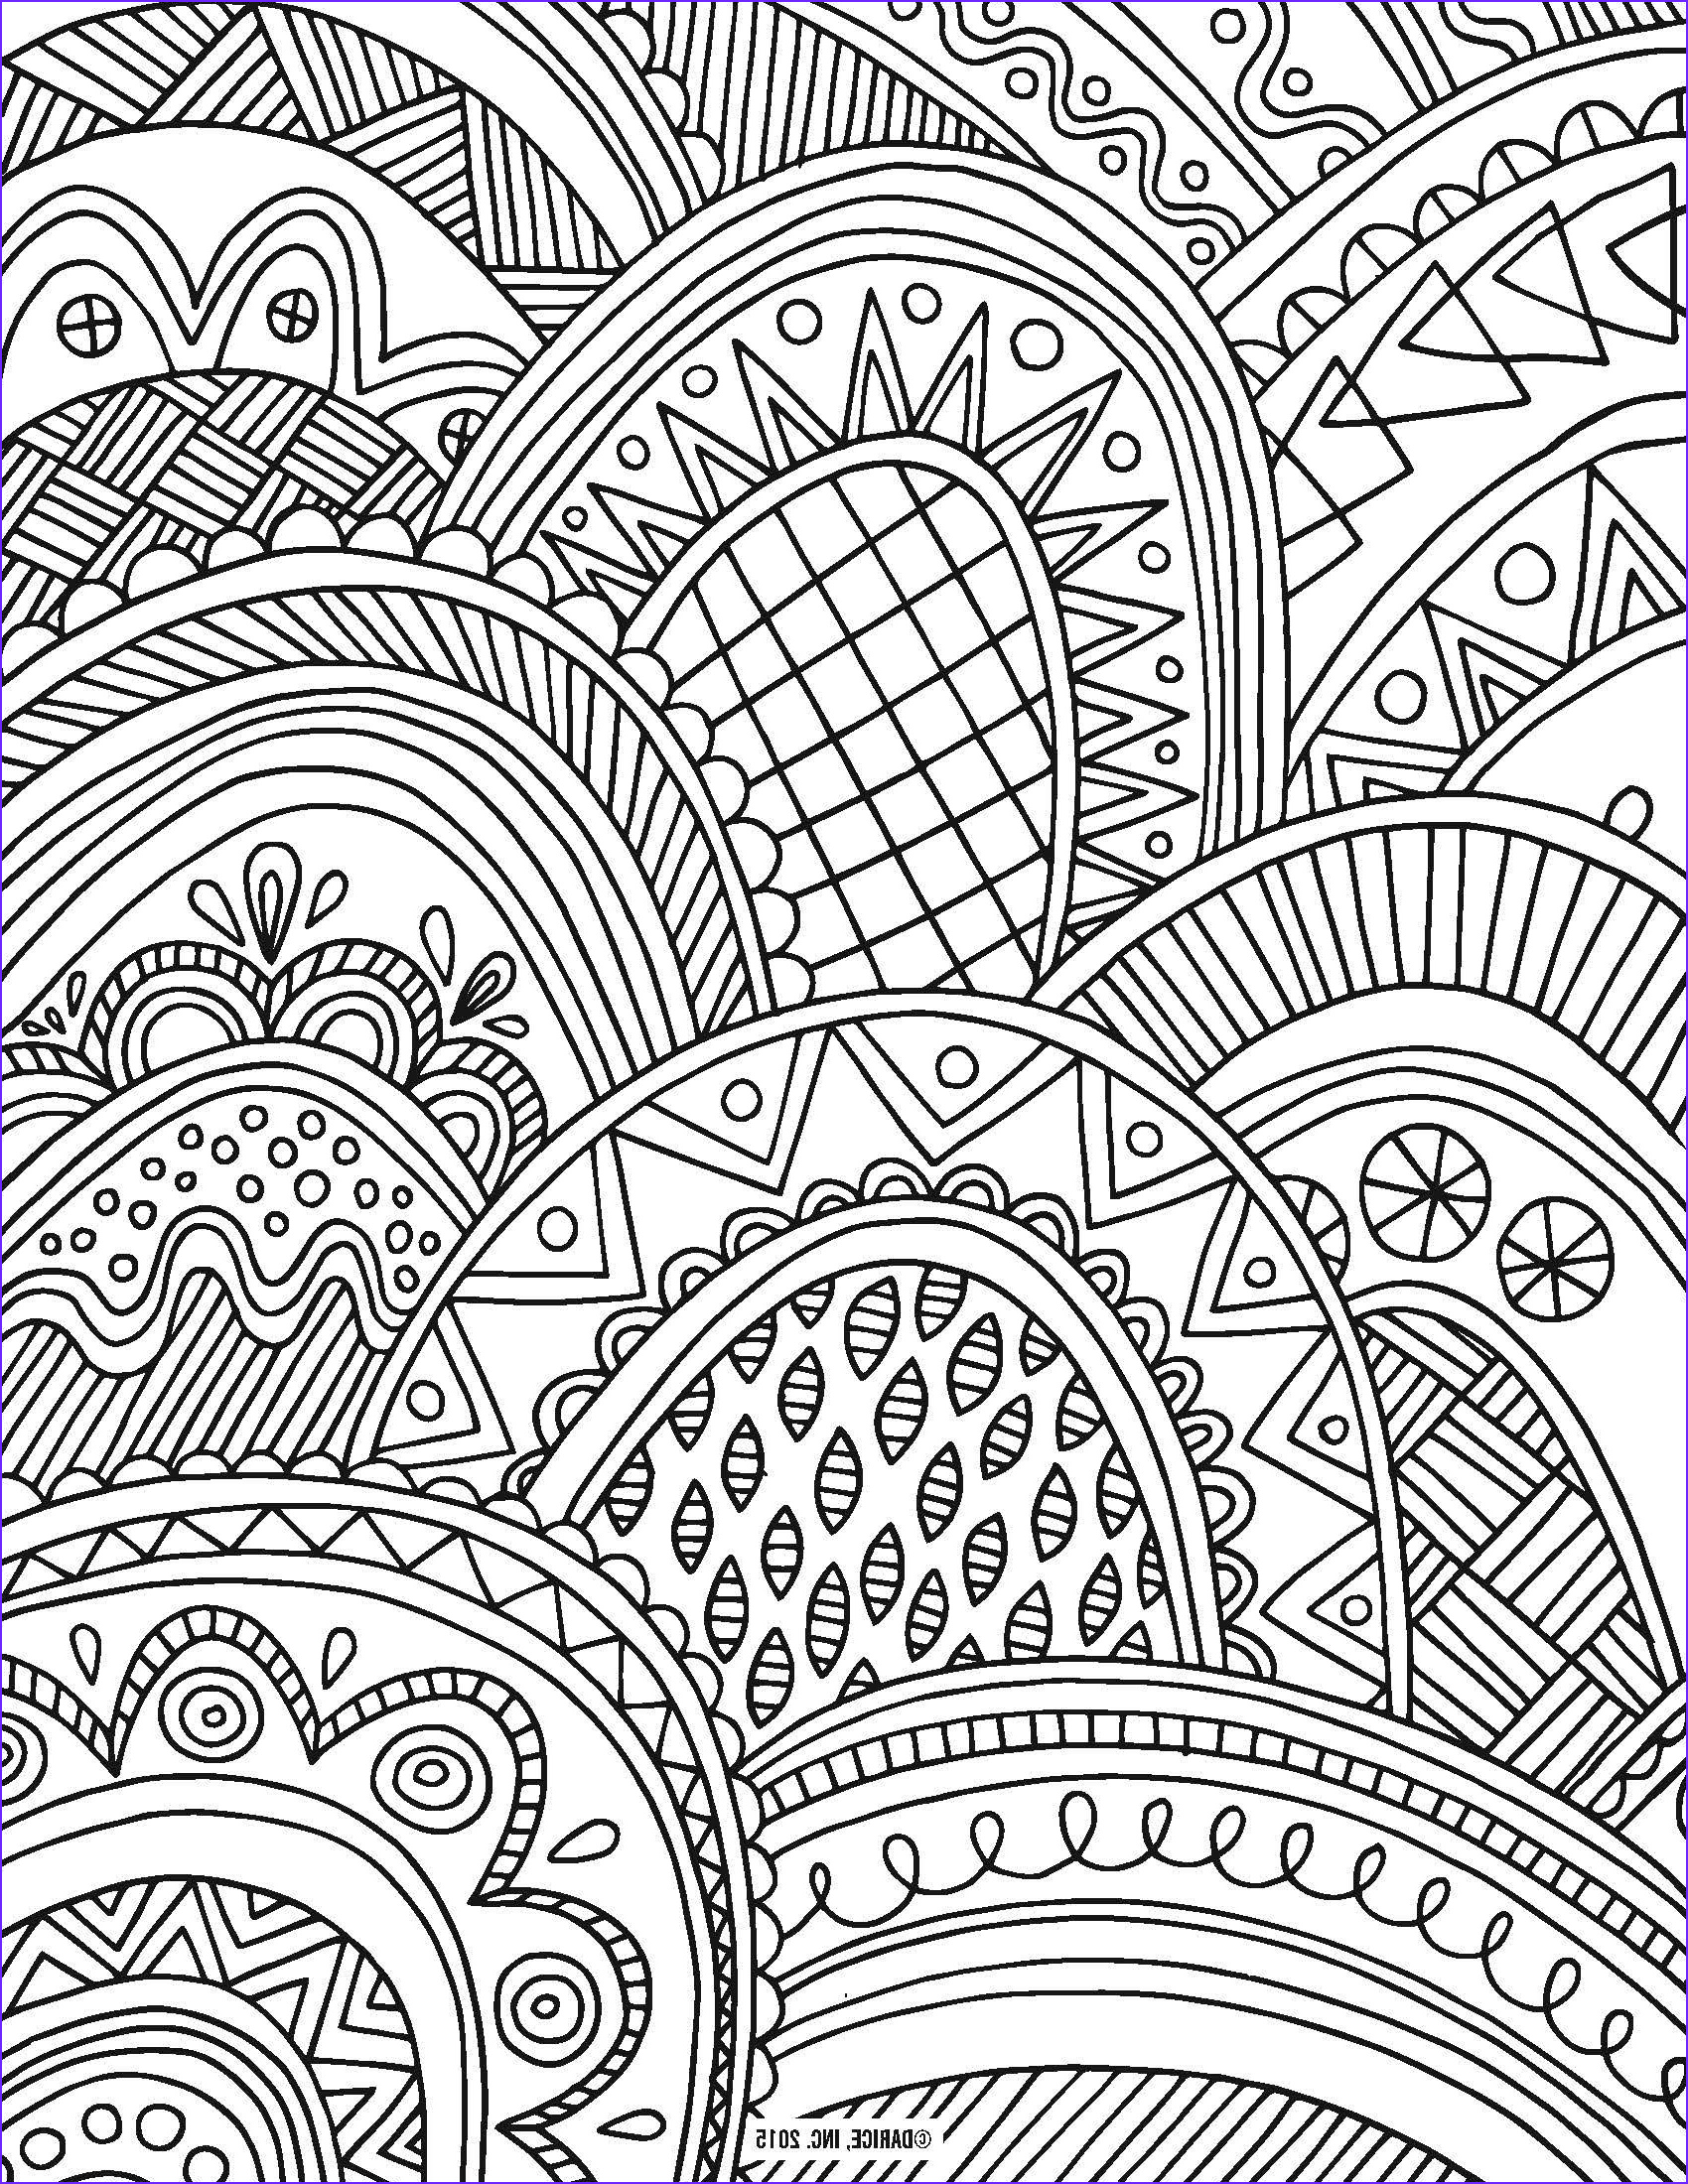 Coloring Books Beautiful Photos Try Out the Adult Coloring Book Trend for Yourself with